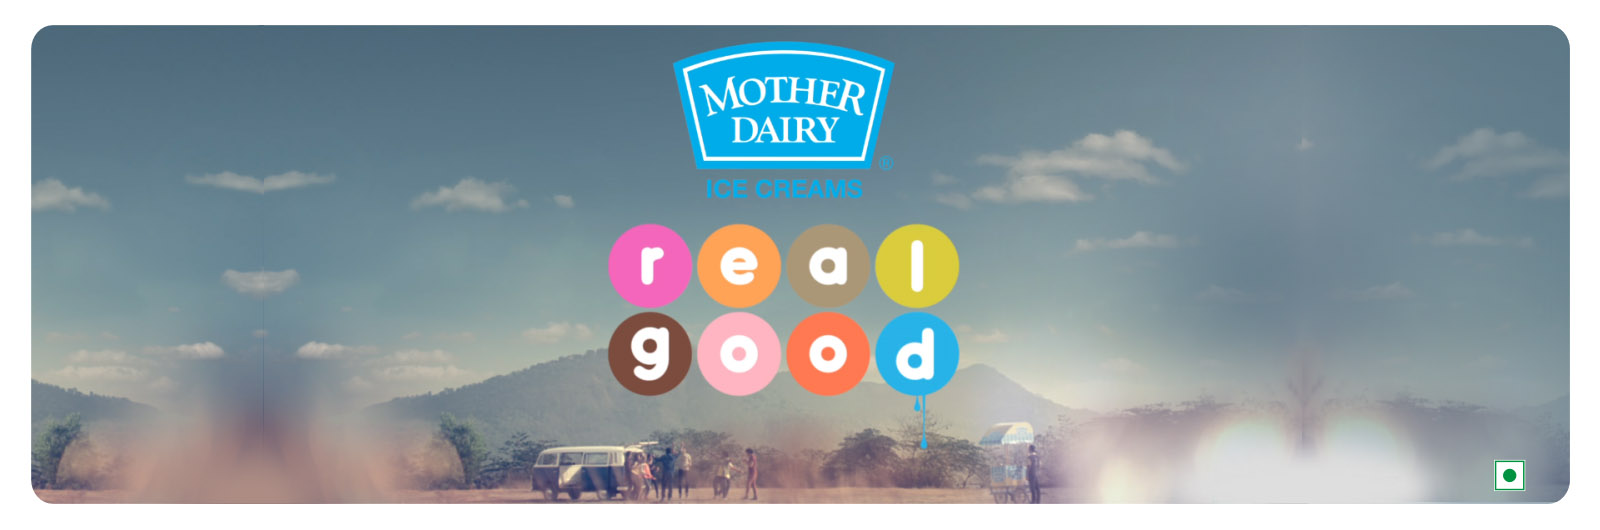 Mother Dairy Ice Cream - Life is Real Good